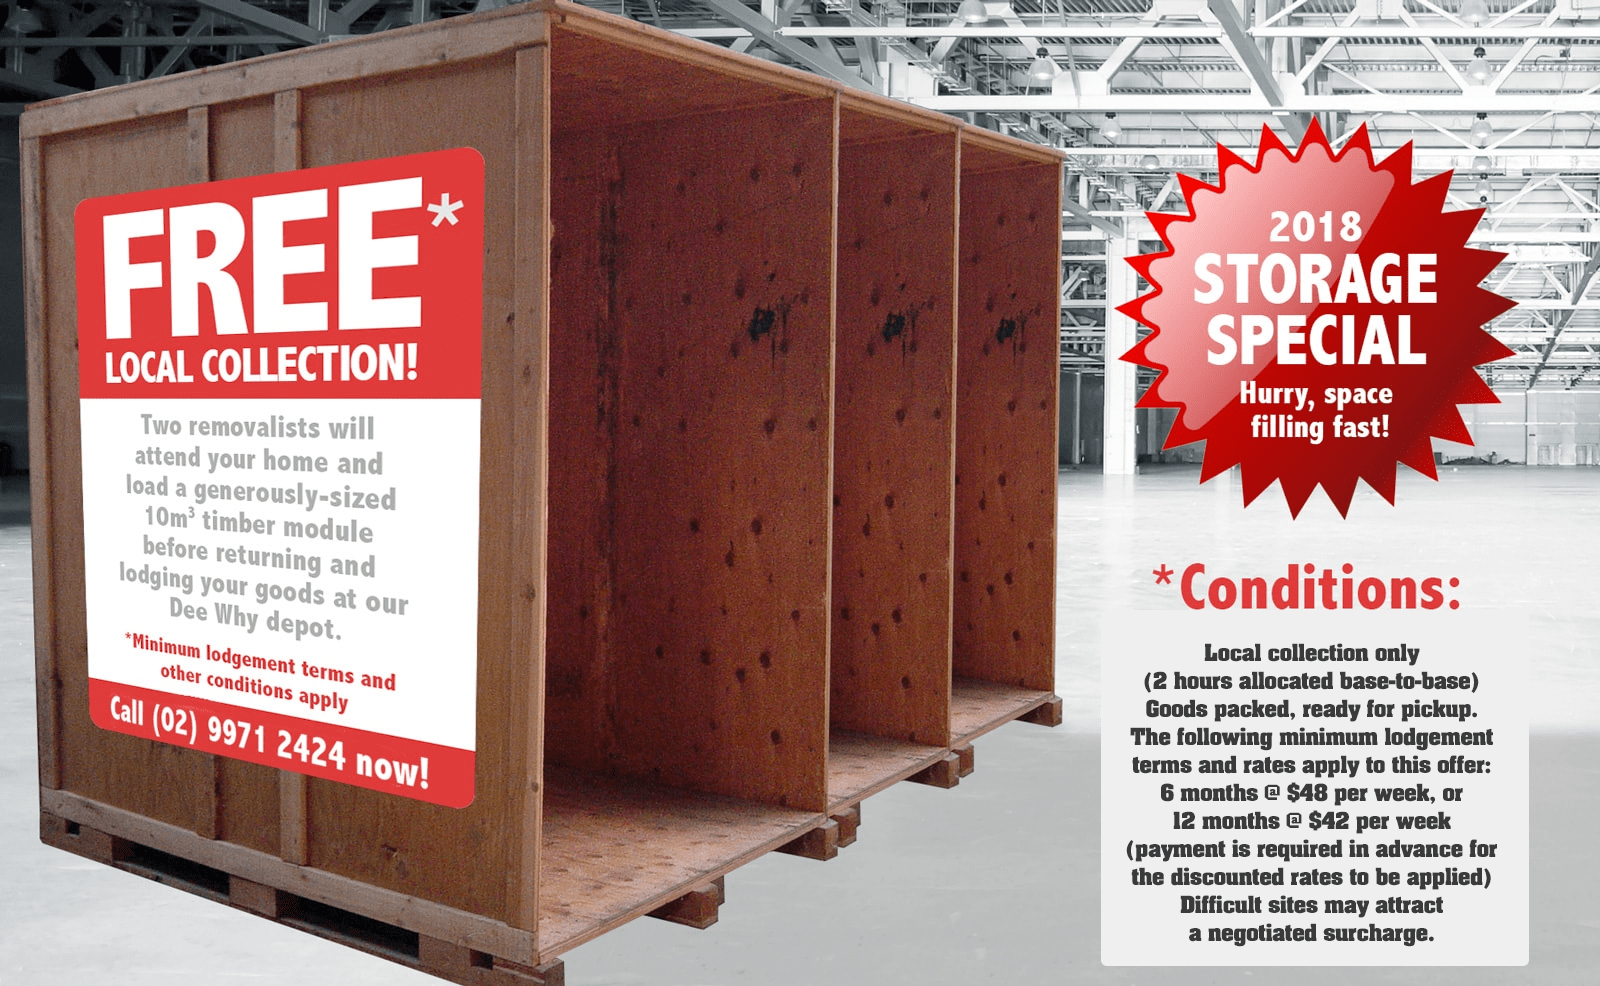 2018 Self-Storage Special Offer - Free Northern Beaches Collection!